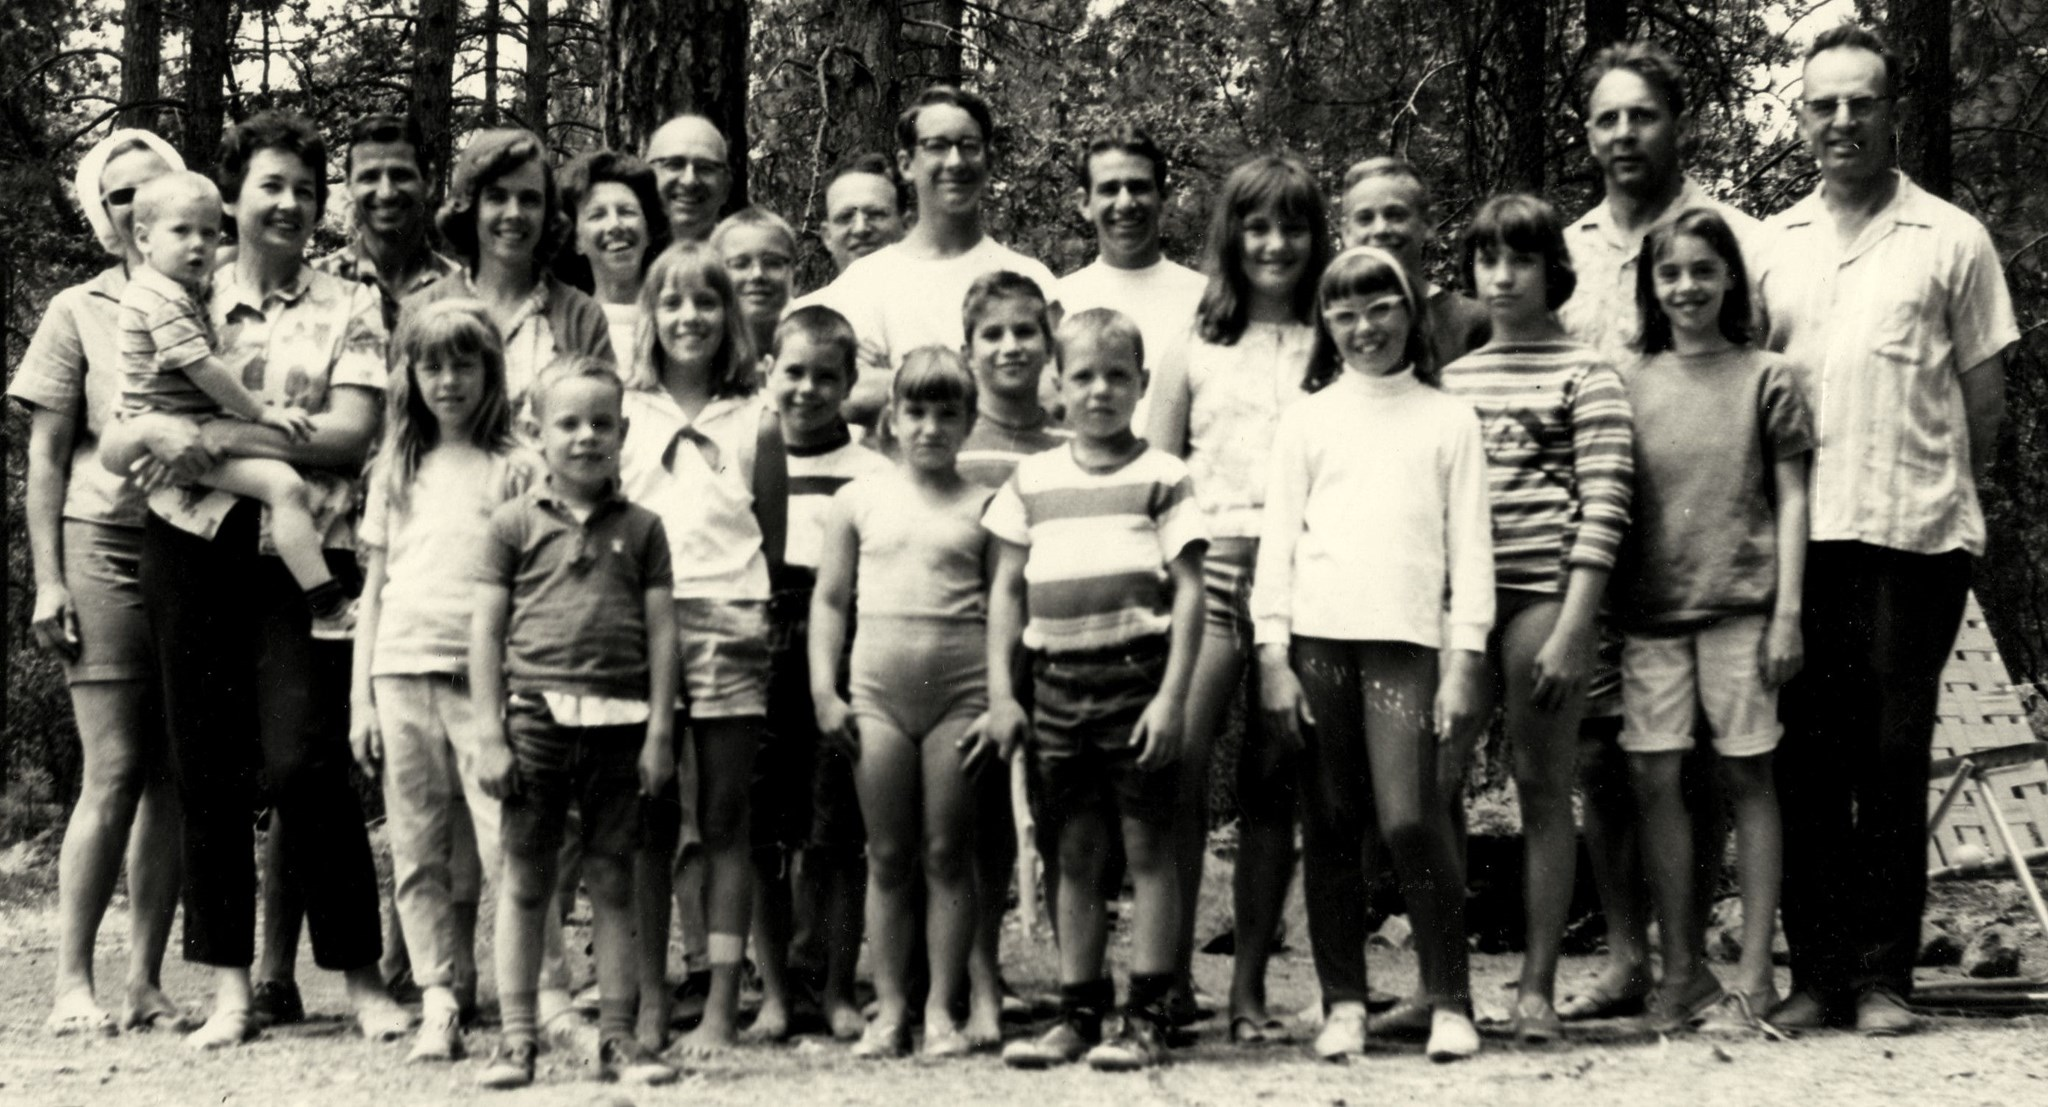 Marantette/Giroux reunion (c. 1966), Joe stands tall in center